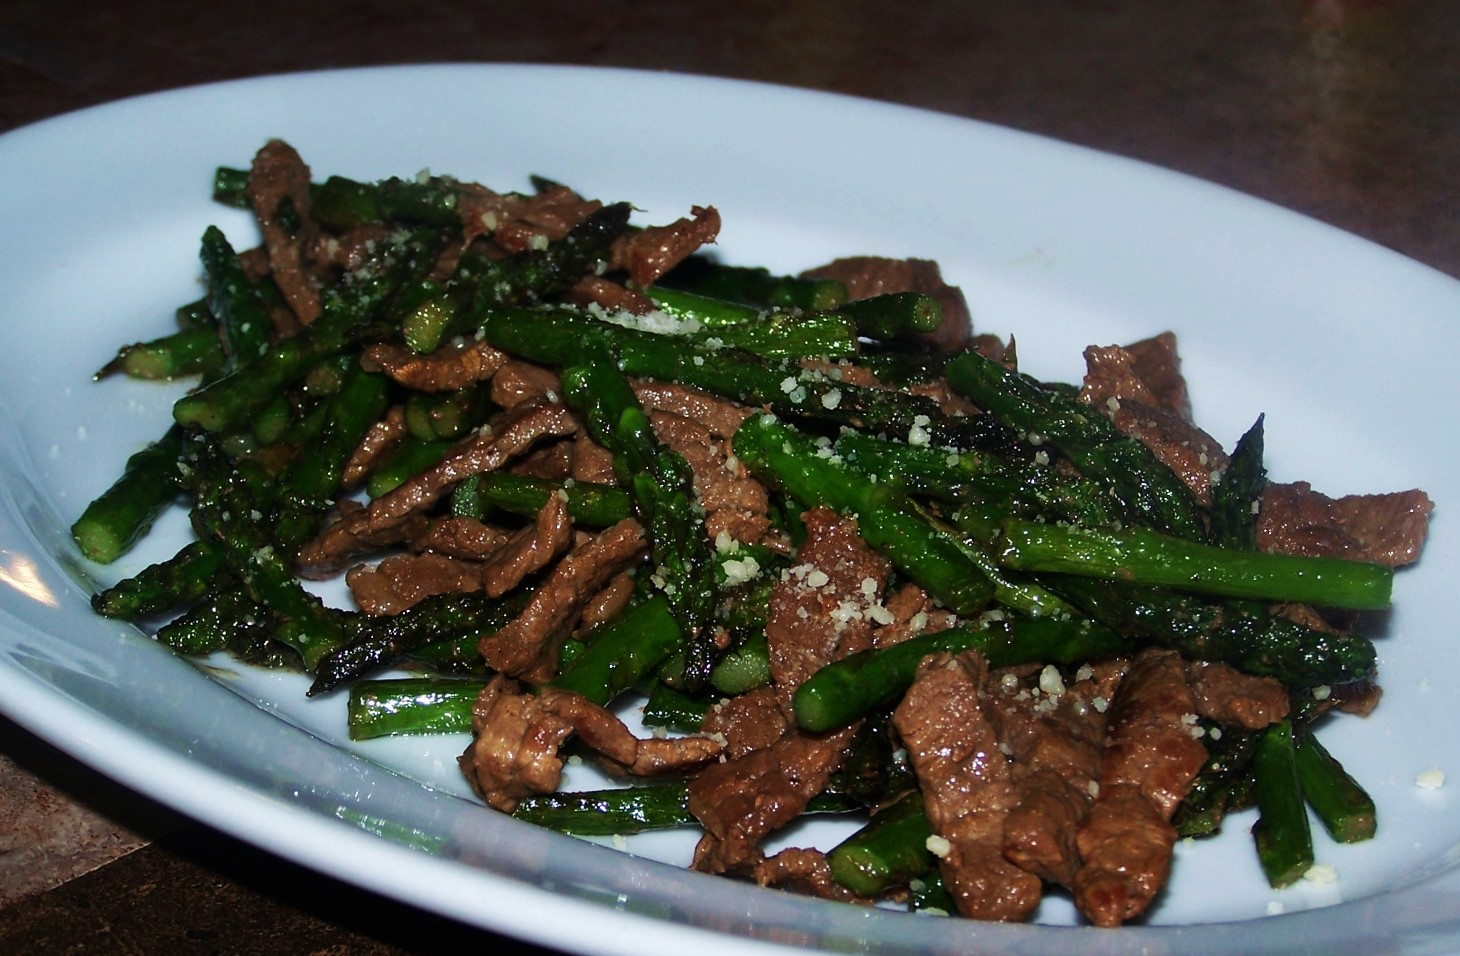 and beef stir fry steak and asparagus stir fry and asparagus stir fry ...